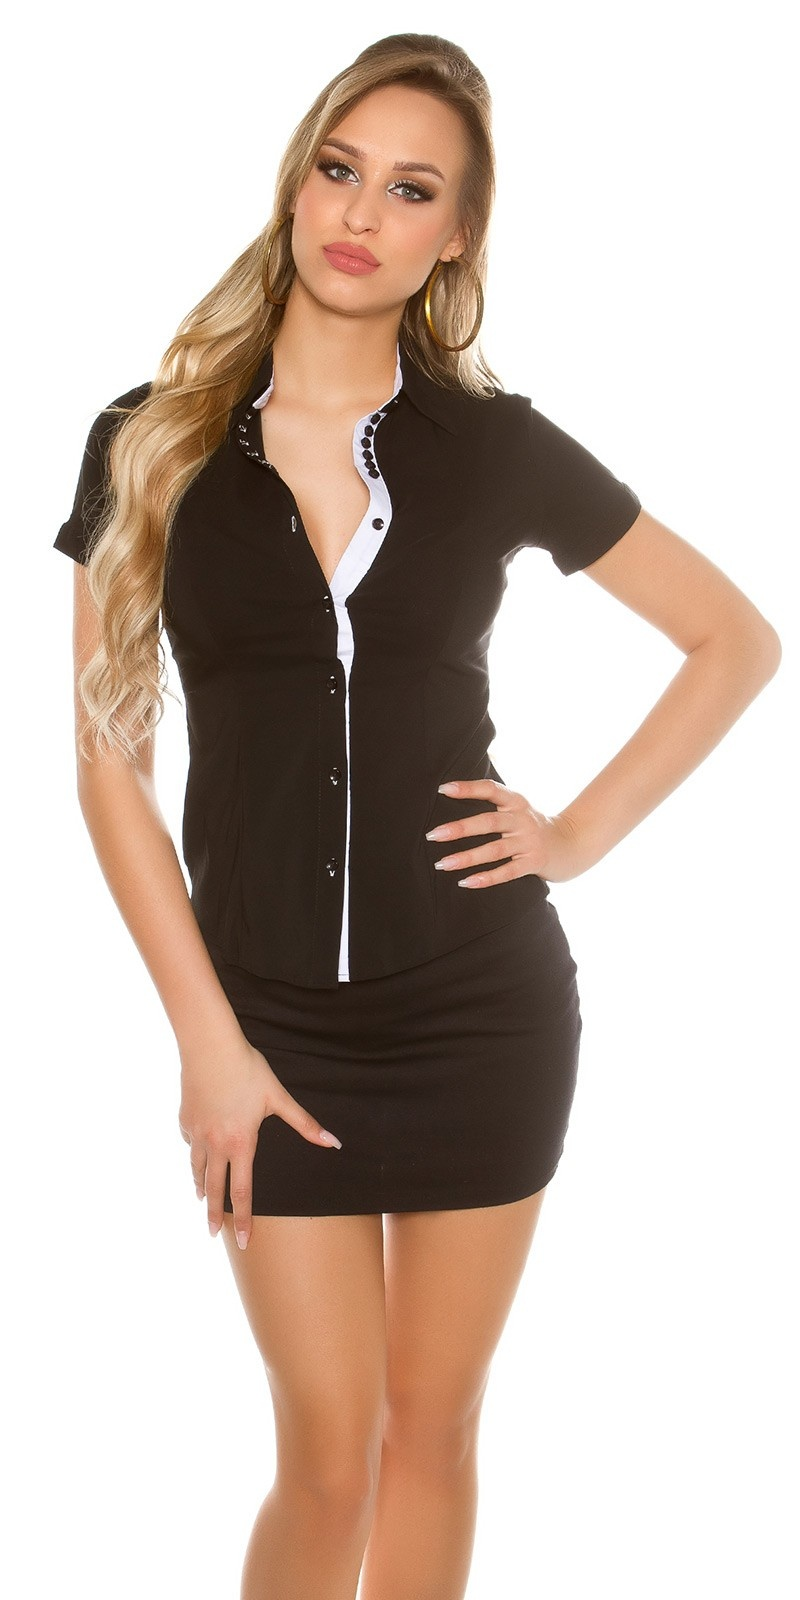 Sexy Short Sleeve Blouse Business Look Black